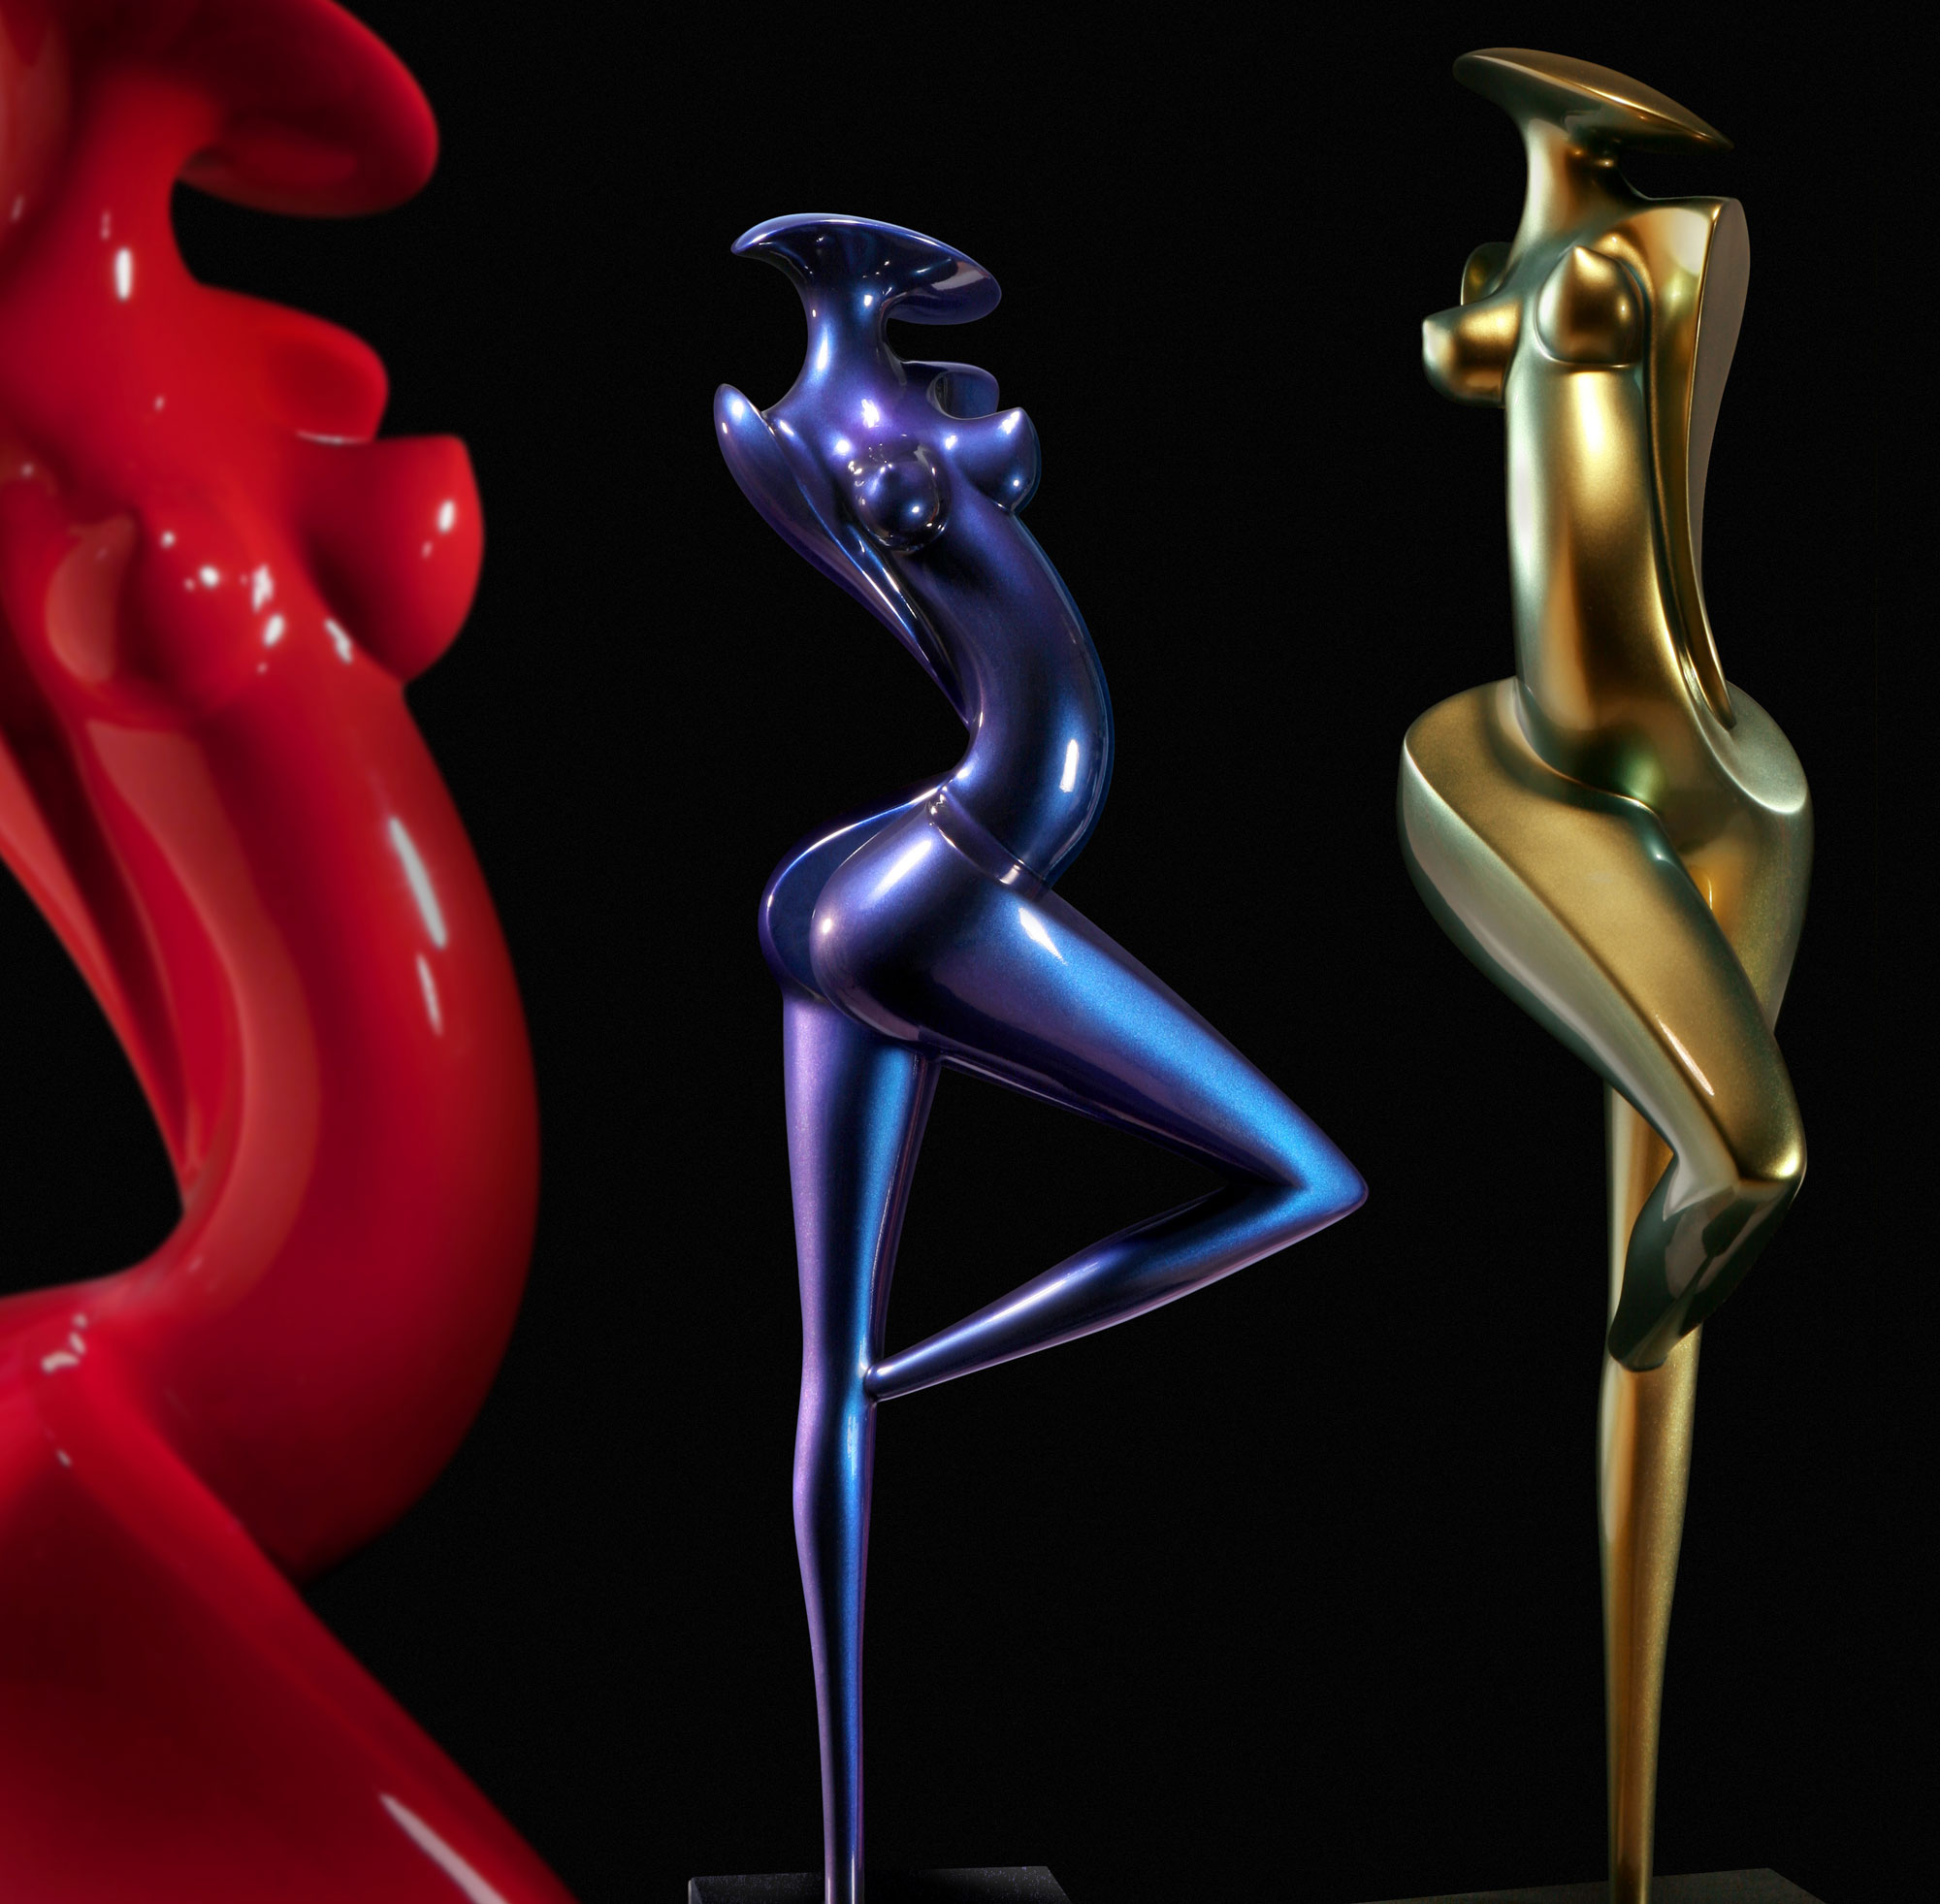 danseuses sculpture contemporaine marion b rkle marion buerkle sculptor. Black Bedroom Furniture Sets. Home Design Ideas